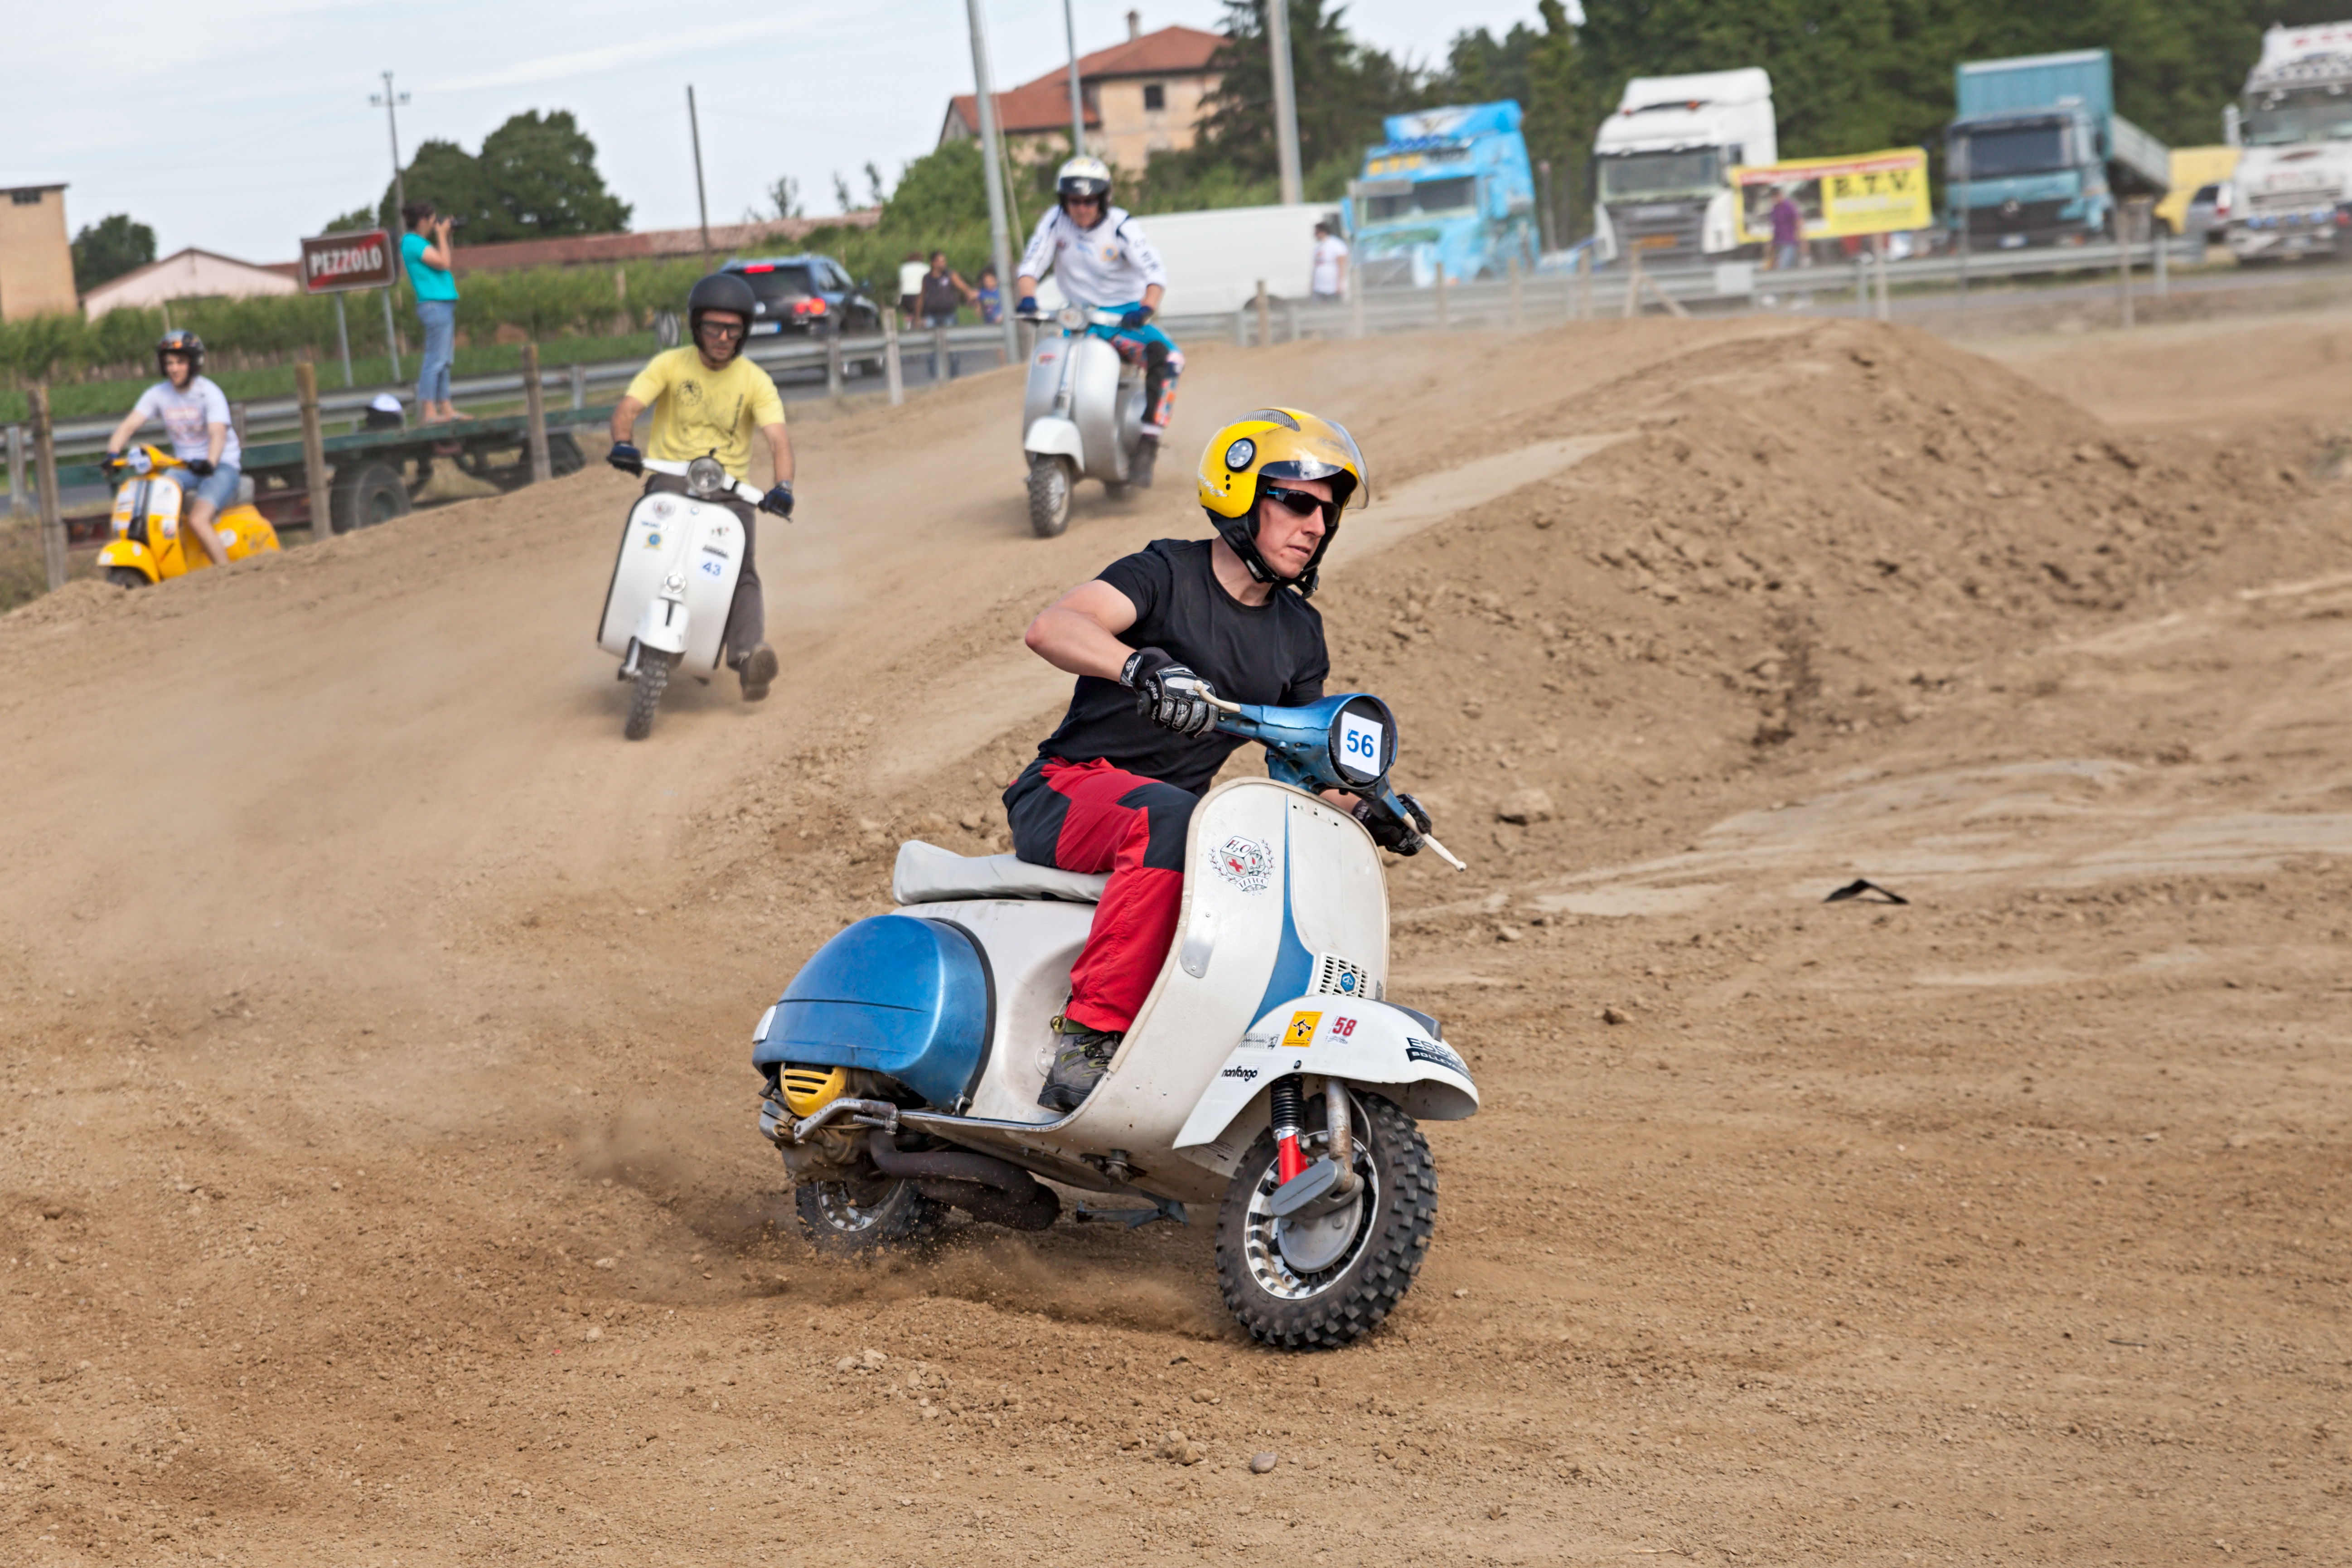 """Vespa cross: a motocross rider engaged in curve on the motocross track riding a vintage italian scooter during the motor festival """"Festa de mutor"""" on June 9, 2013 in Pezzolo di Russi, RA, Italy"""